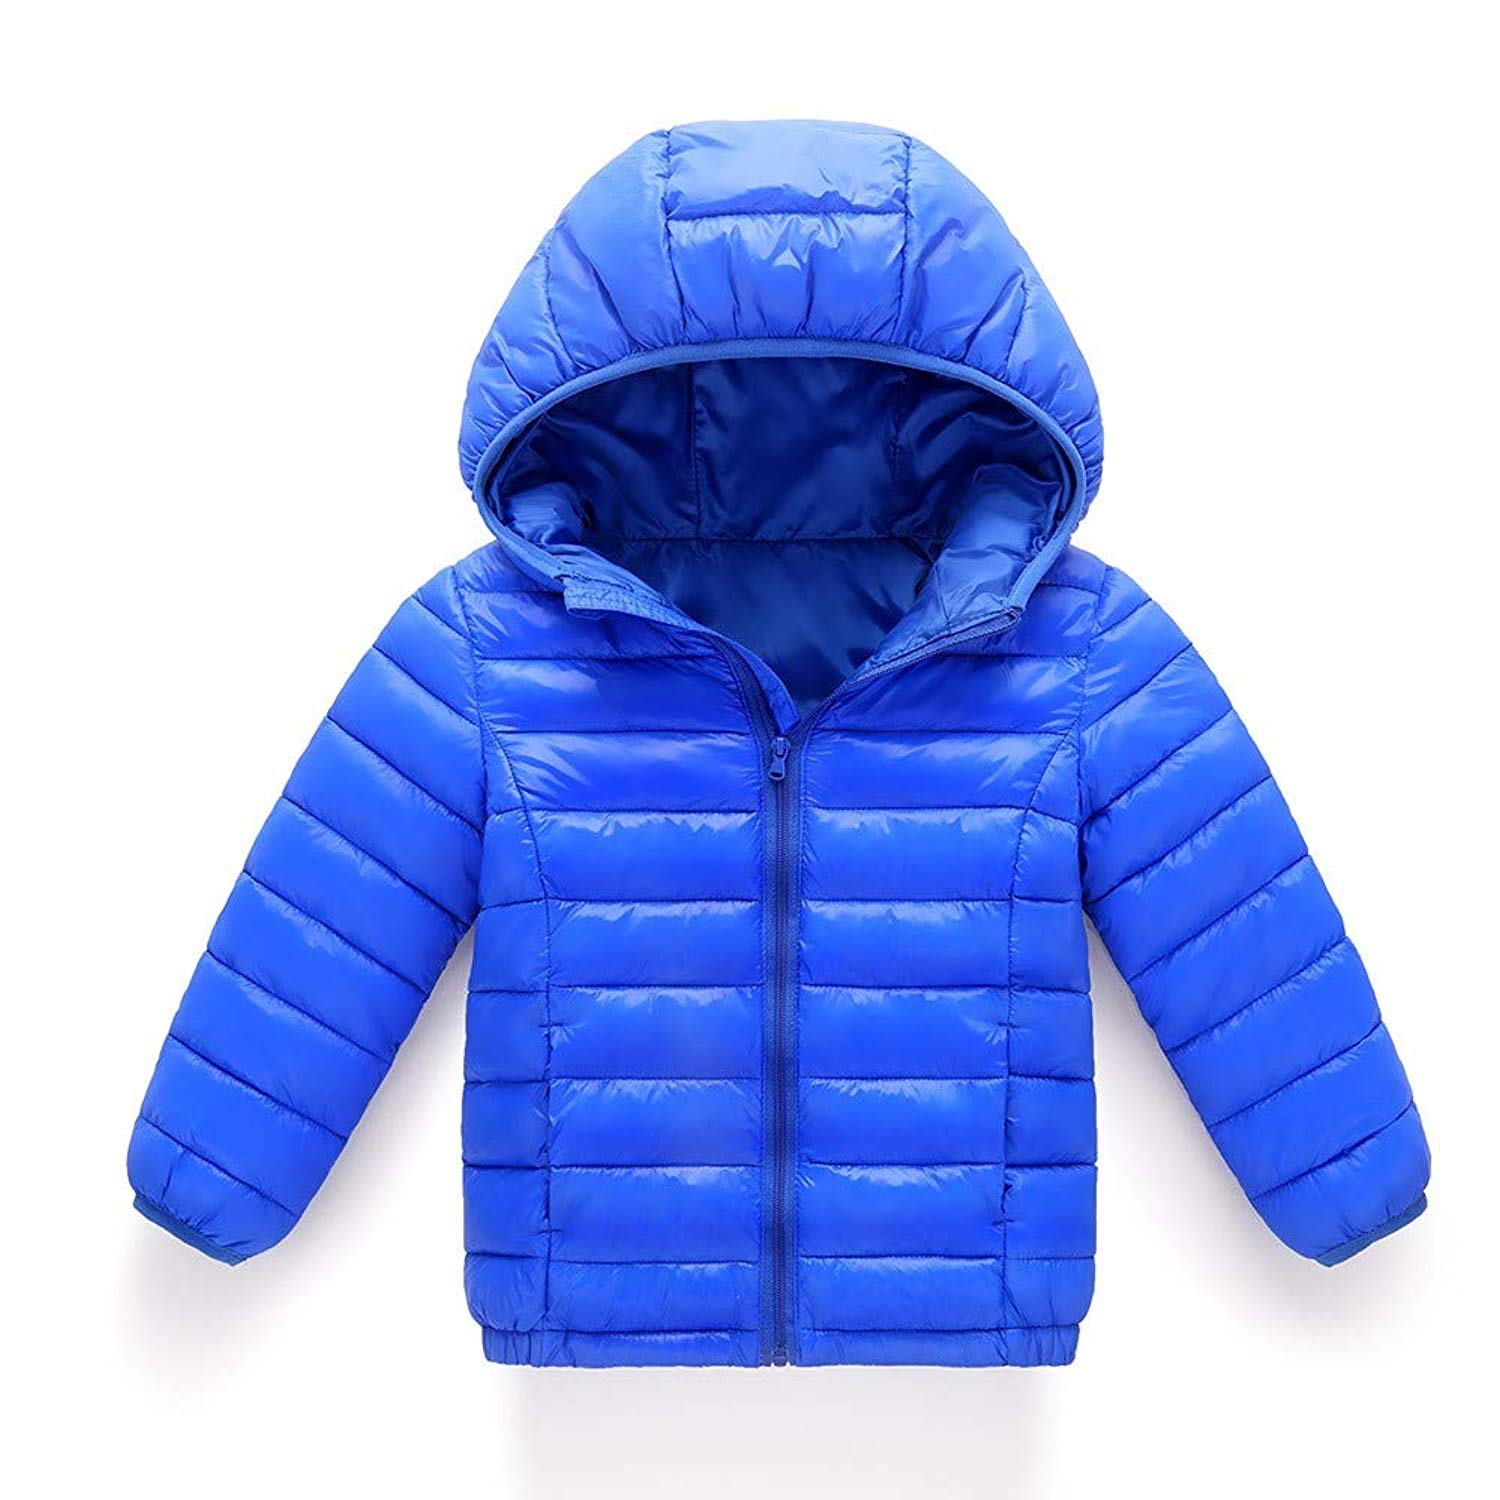 87f56e7fc Get Quotations · Outtop(TM) Baby Boys Girls Down Jacket Coats Child Kids  Autumn Winter Cotton Hooded